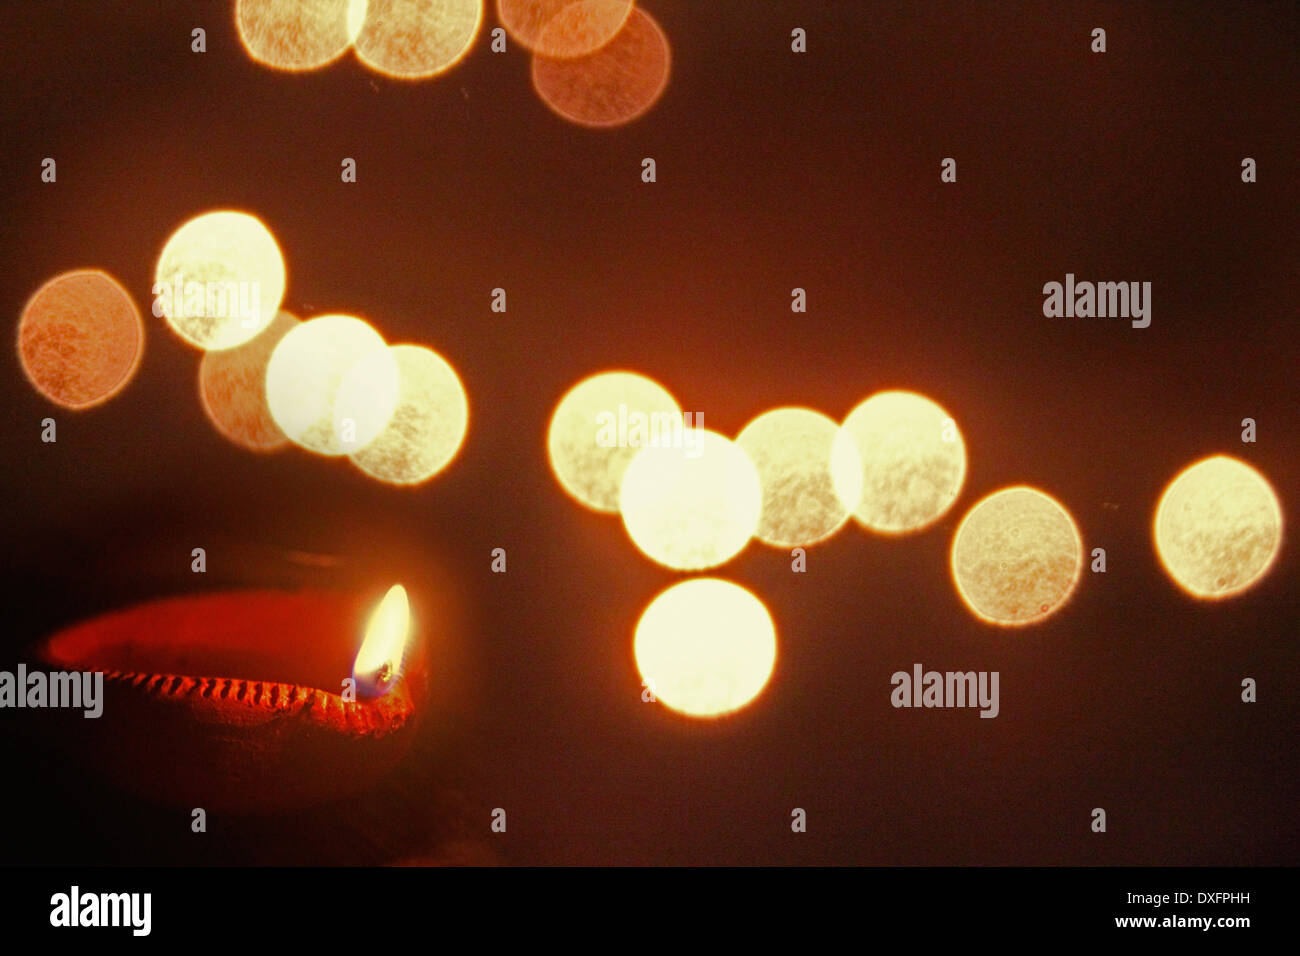 Oil Lamp, Diya during Diwali Festival, India - Stock Image